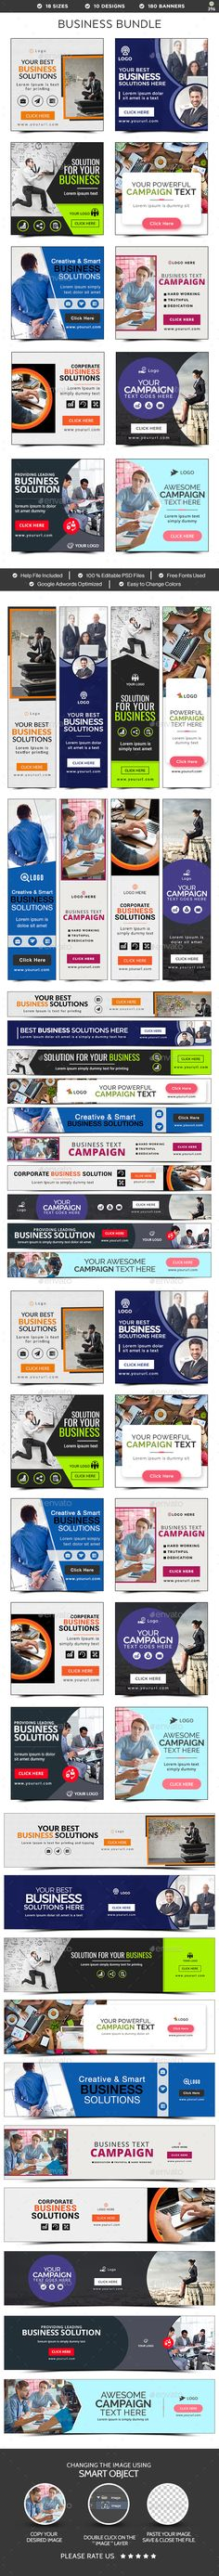 Business Banners Templates PSD Bundle - 10 Sets - 180 Banners